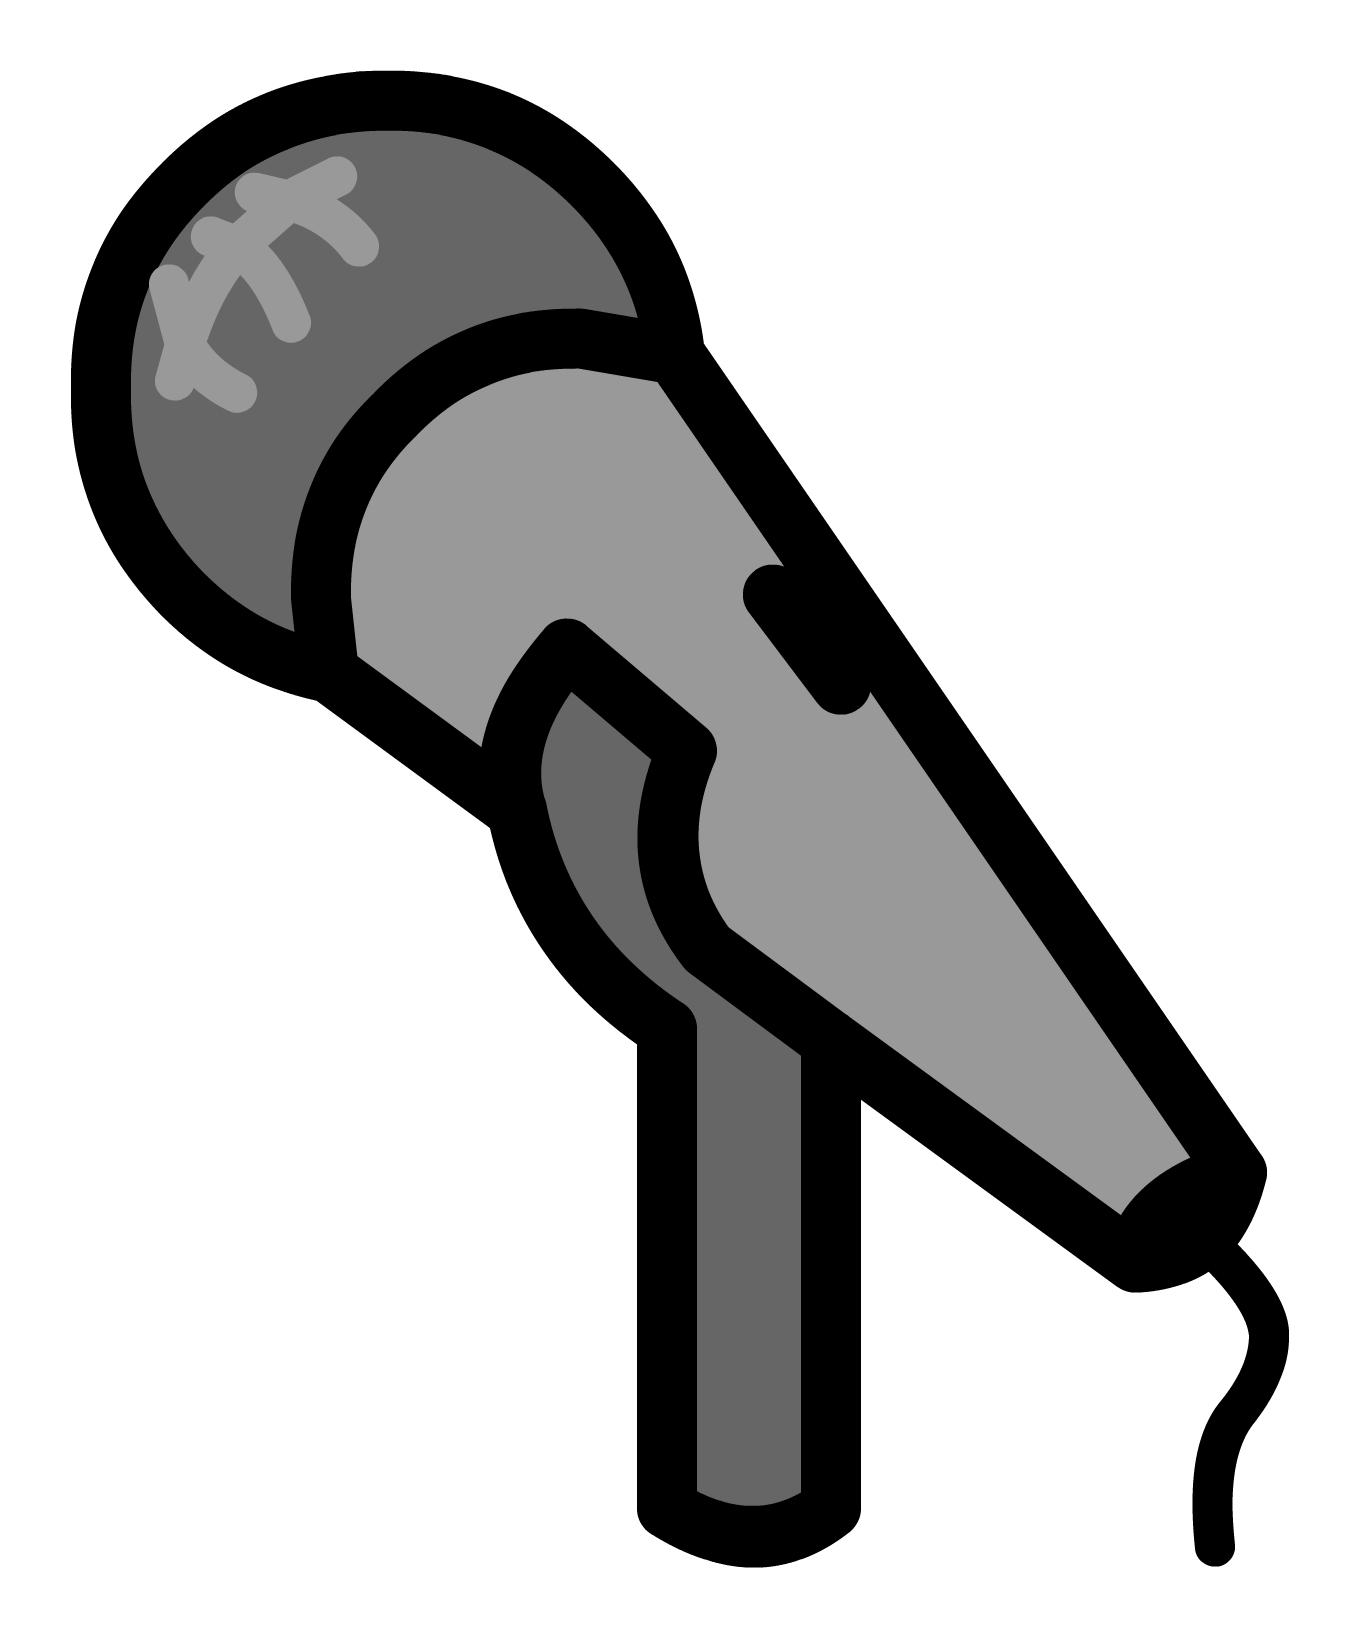 Mic images png. Image microphone pin club